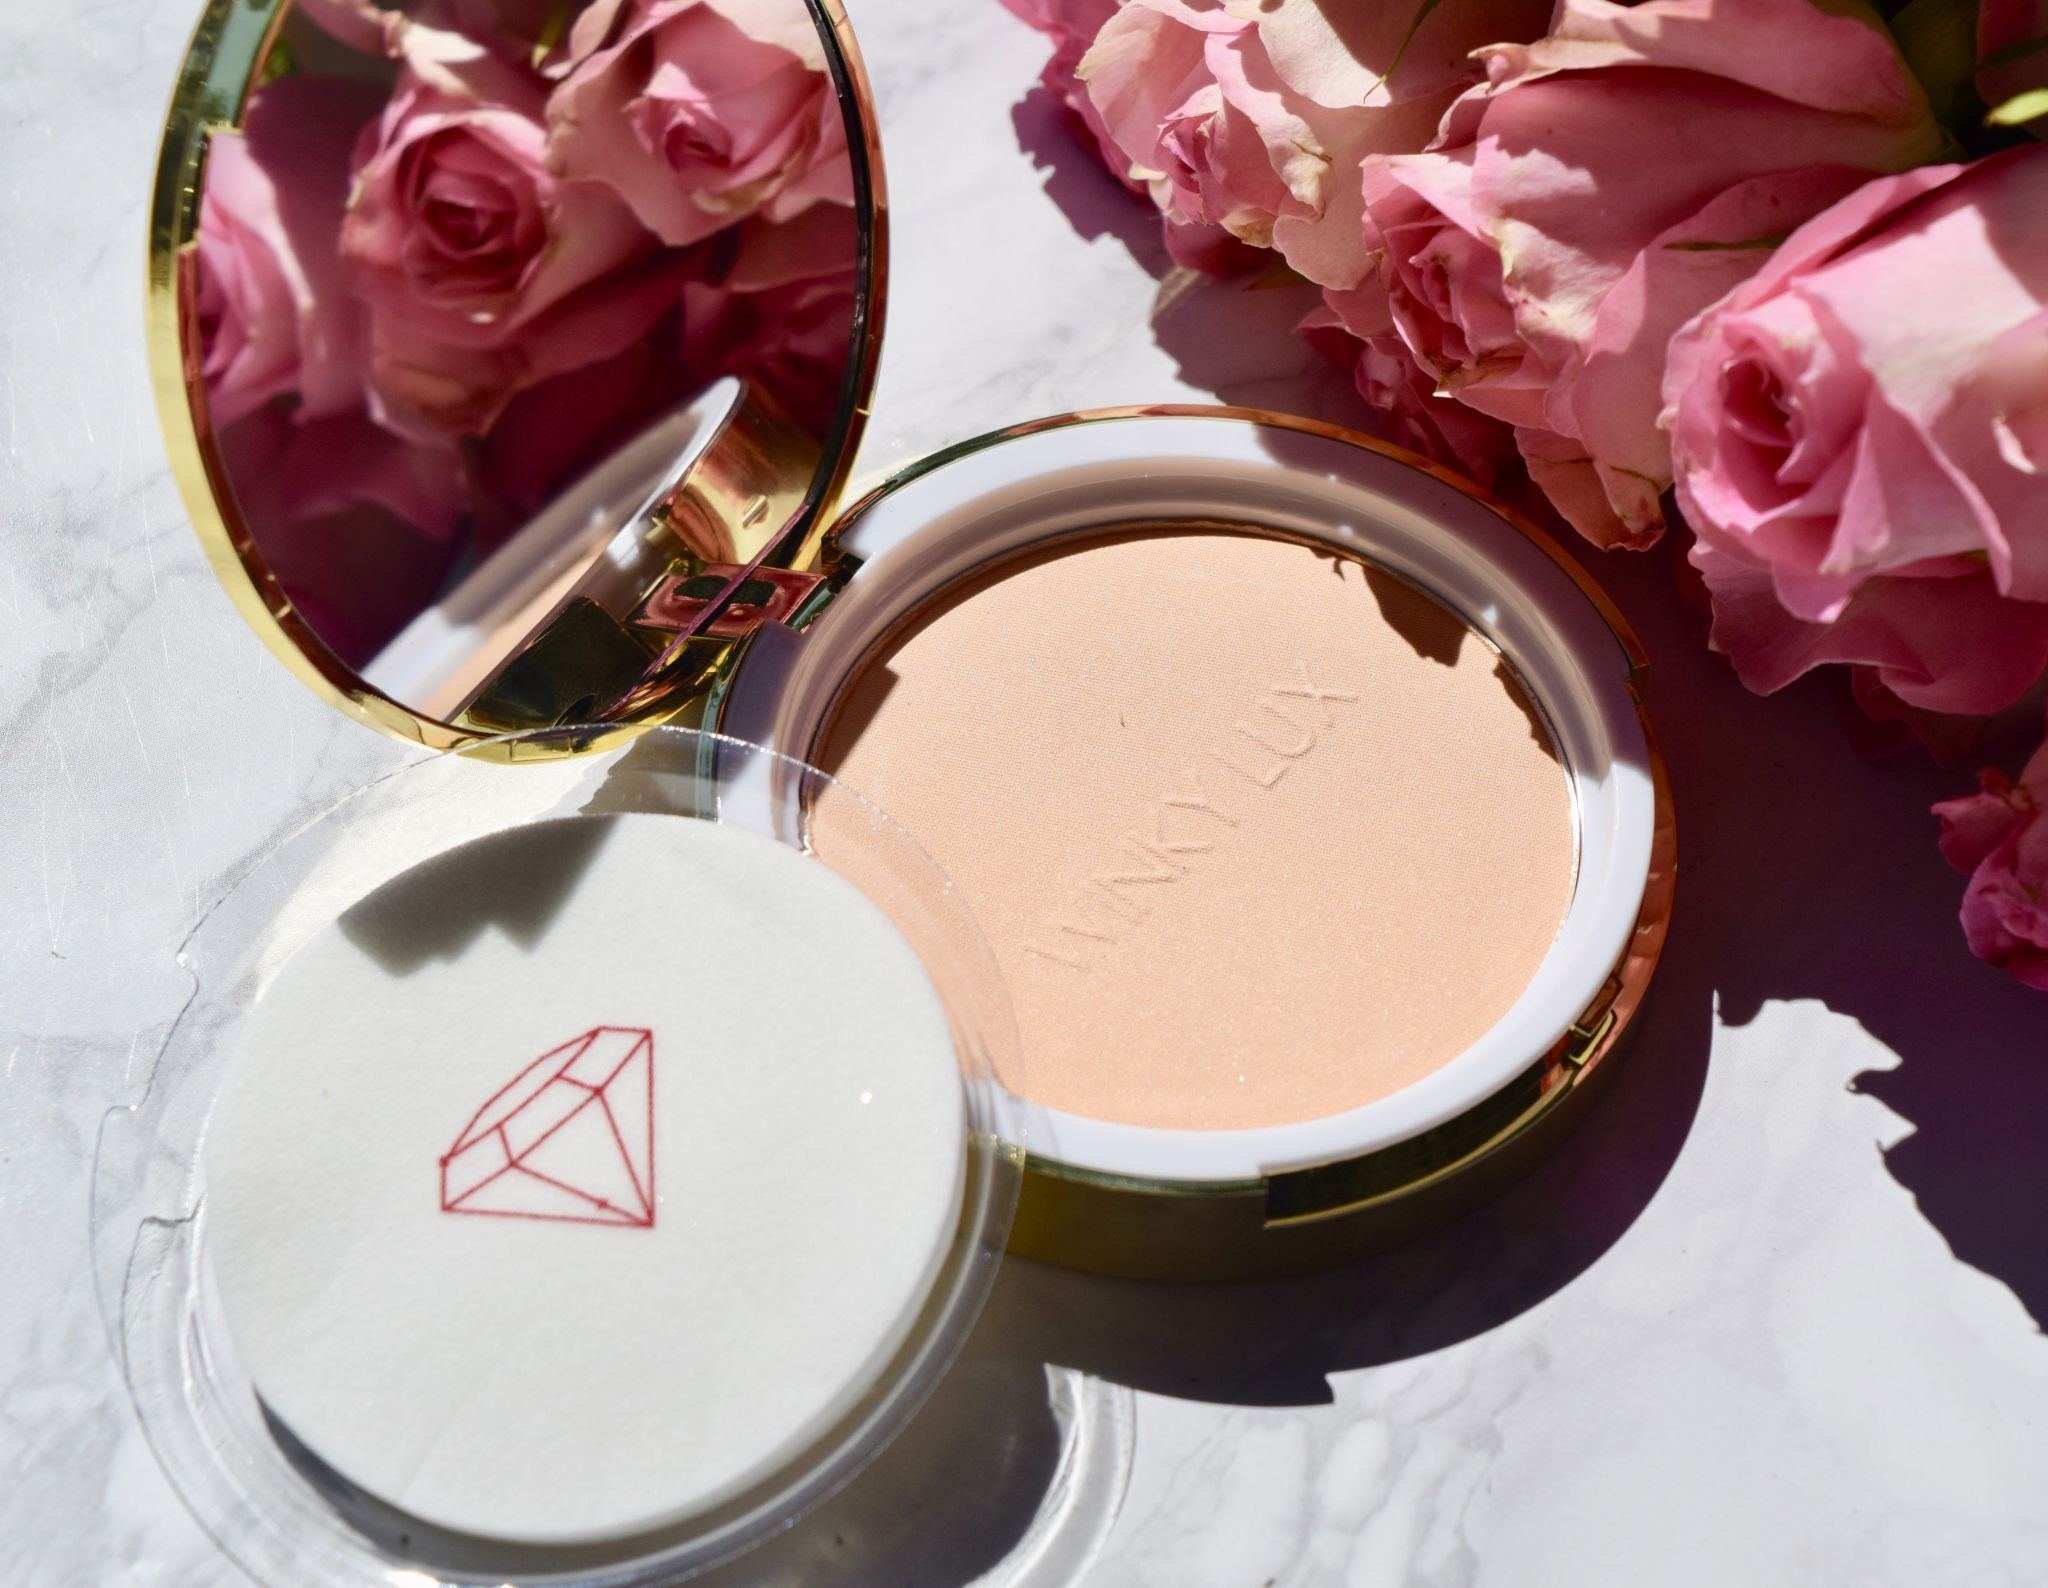 Winky Lux Diamond Complexion Powder